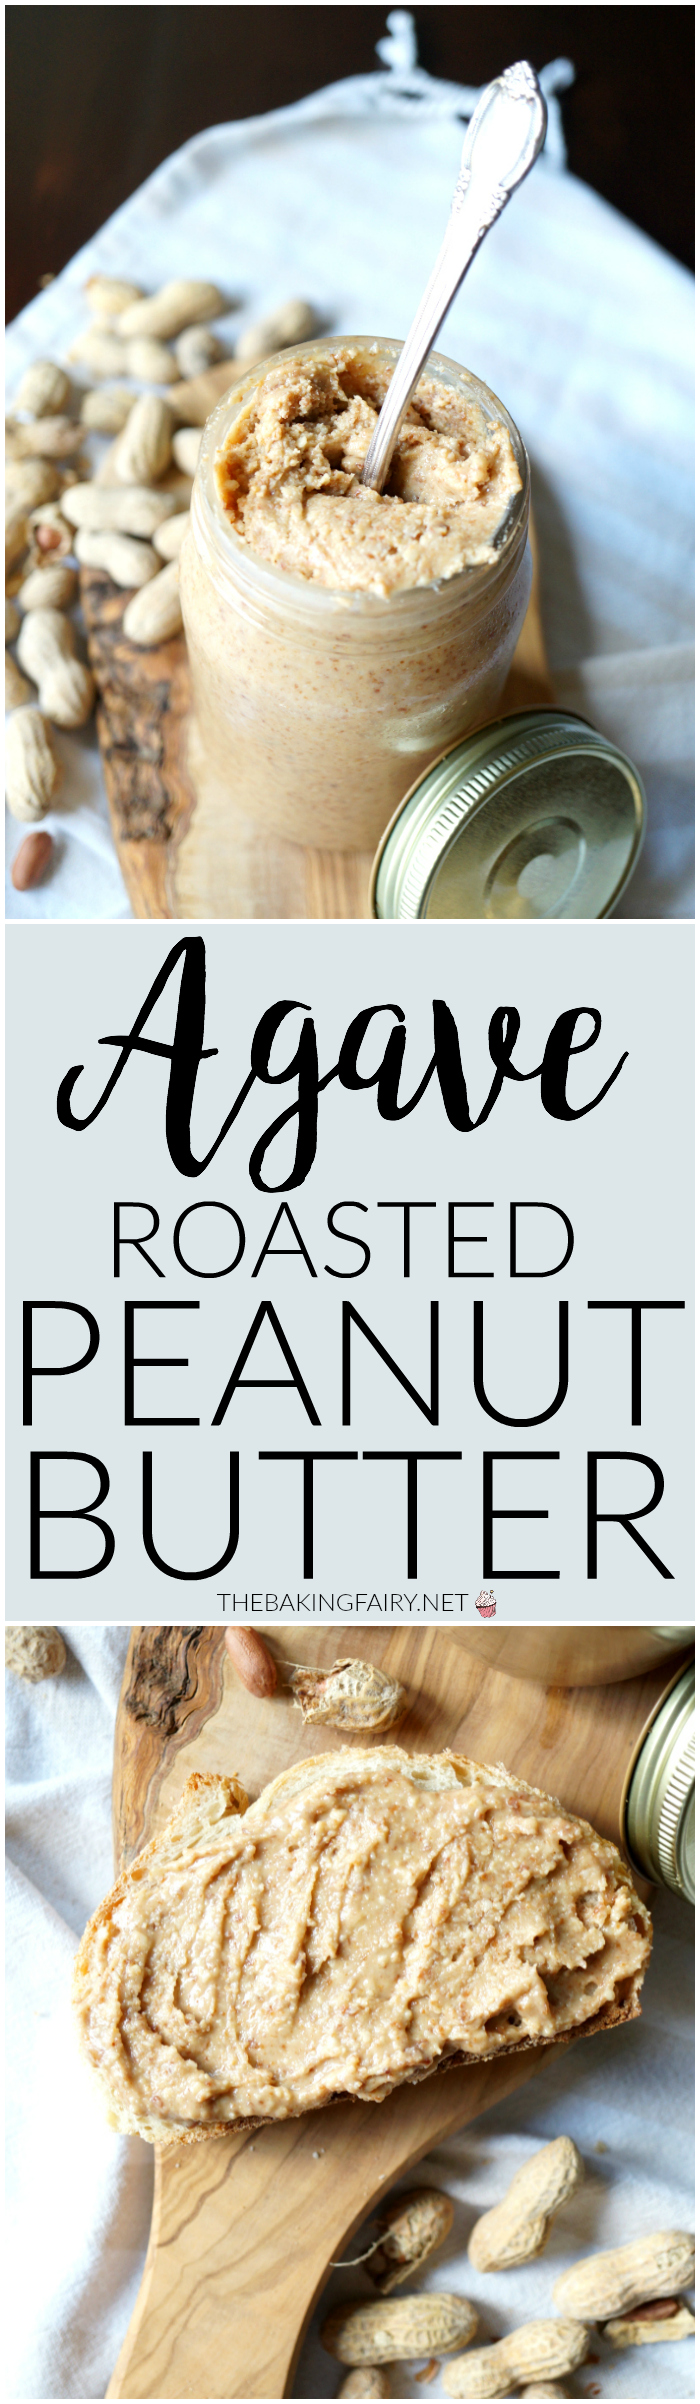 agave roasted peanut butter | The Baking Fairy